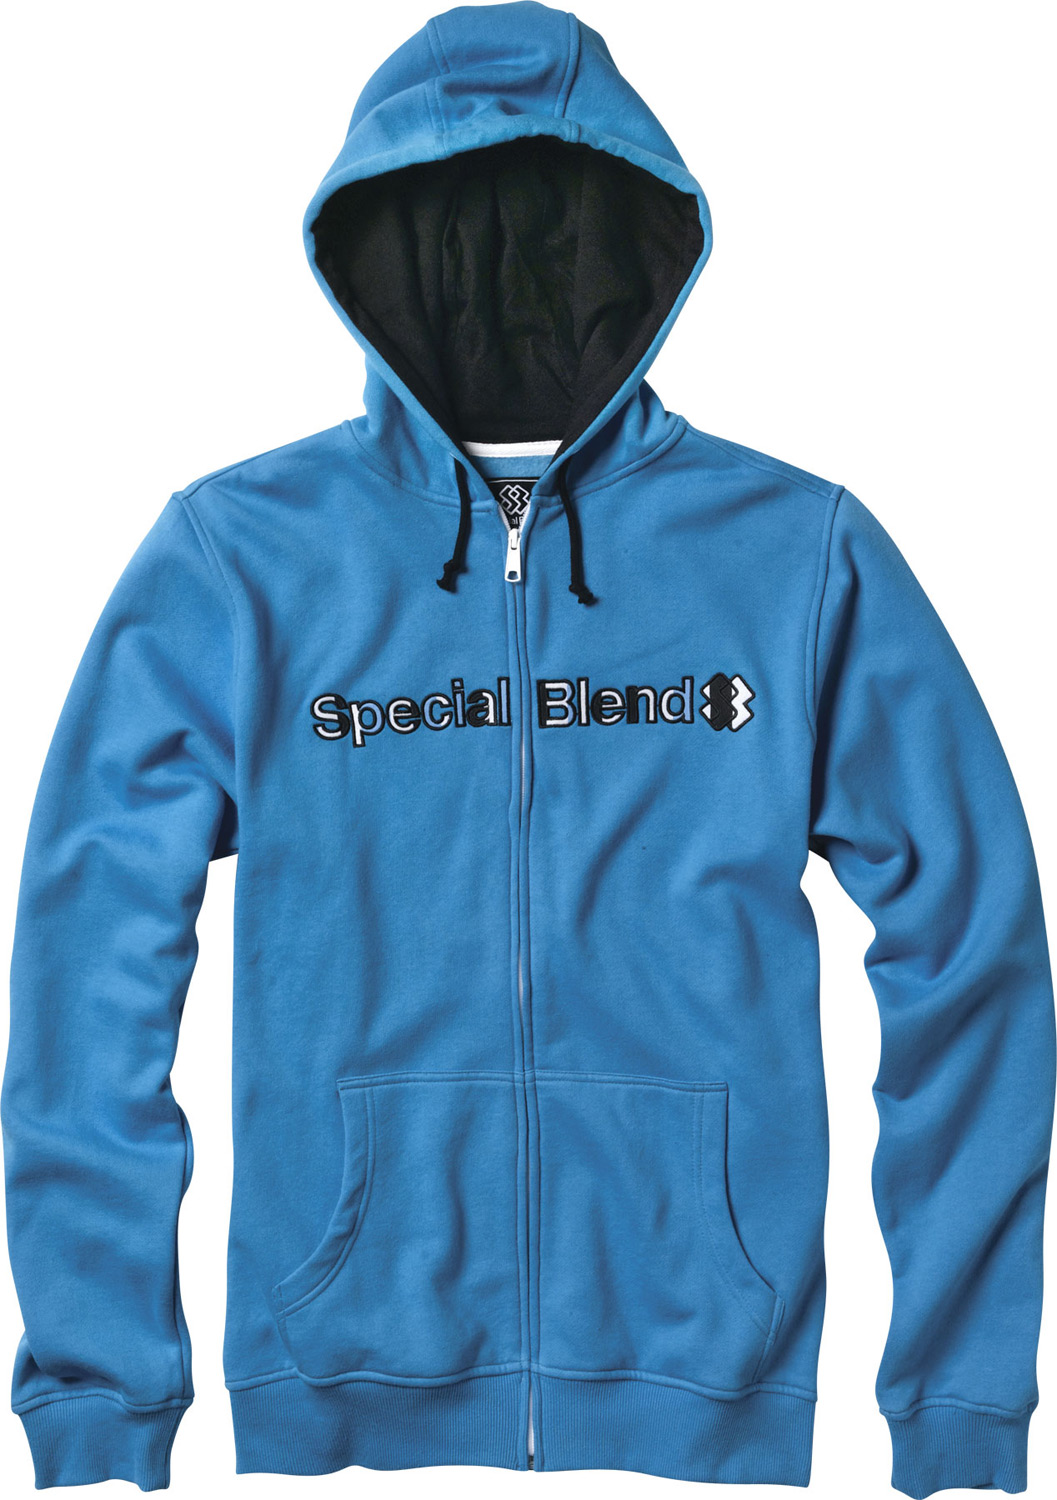 Special Blend Blended Zip Hoodie. Exactly as the name says, this hoodie is a special blend of mostly cotton and a hint of polyester. The mid-weight insulation makes the Special Blend Zip Hoodie great for any situation from snow to rain to windy. Even if it's just a bit cool- this hoodie has you covered (literally . The Special Blend Hoodie also comes with kangaroo pockets to provide even more warmth if the time calls for it.Key Features of the Special Blend Blended Zip Hoodie:  Full zip hooded fleece   Freedom fit  80% cotton 20% polyester, 300 gms.  Screenprint art - $27.95